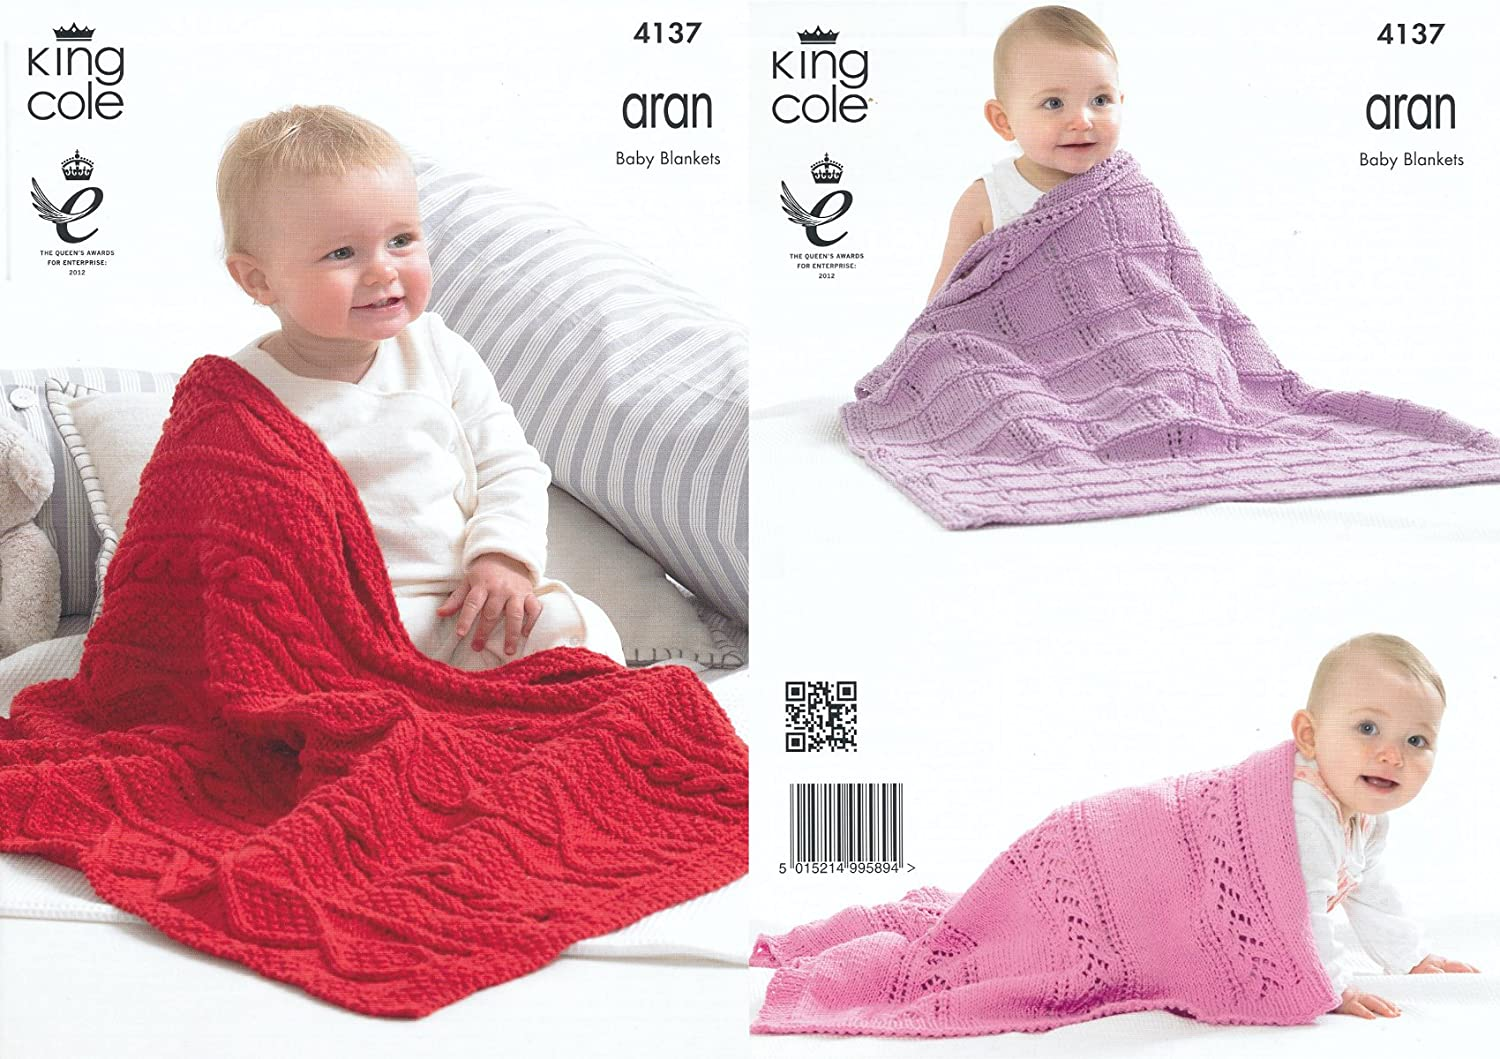 King Cole Recycled Cotton Aran Knitting Pattern for Cable Knit Lace ...